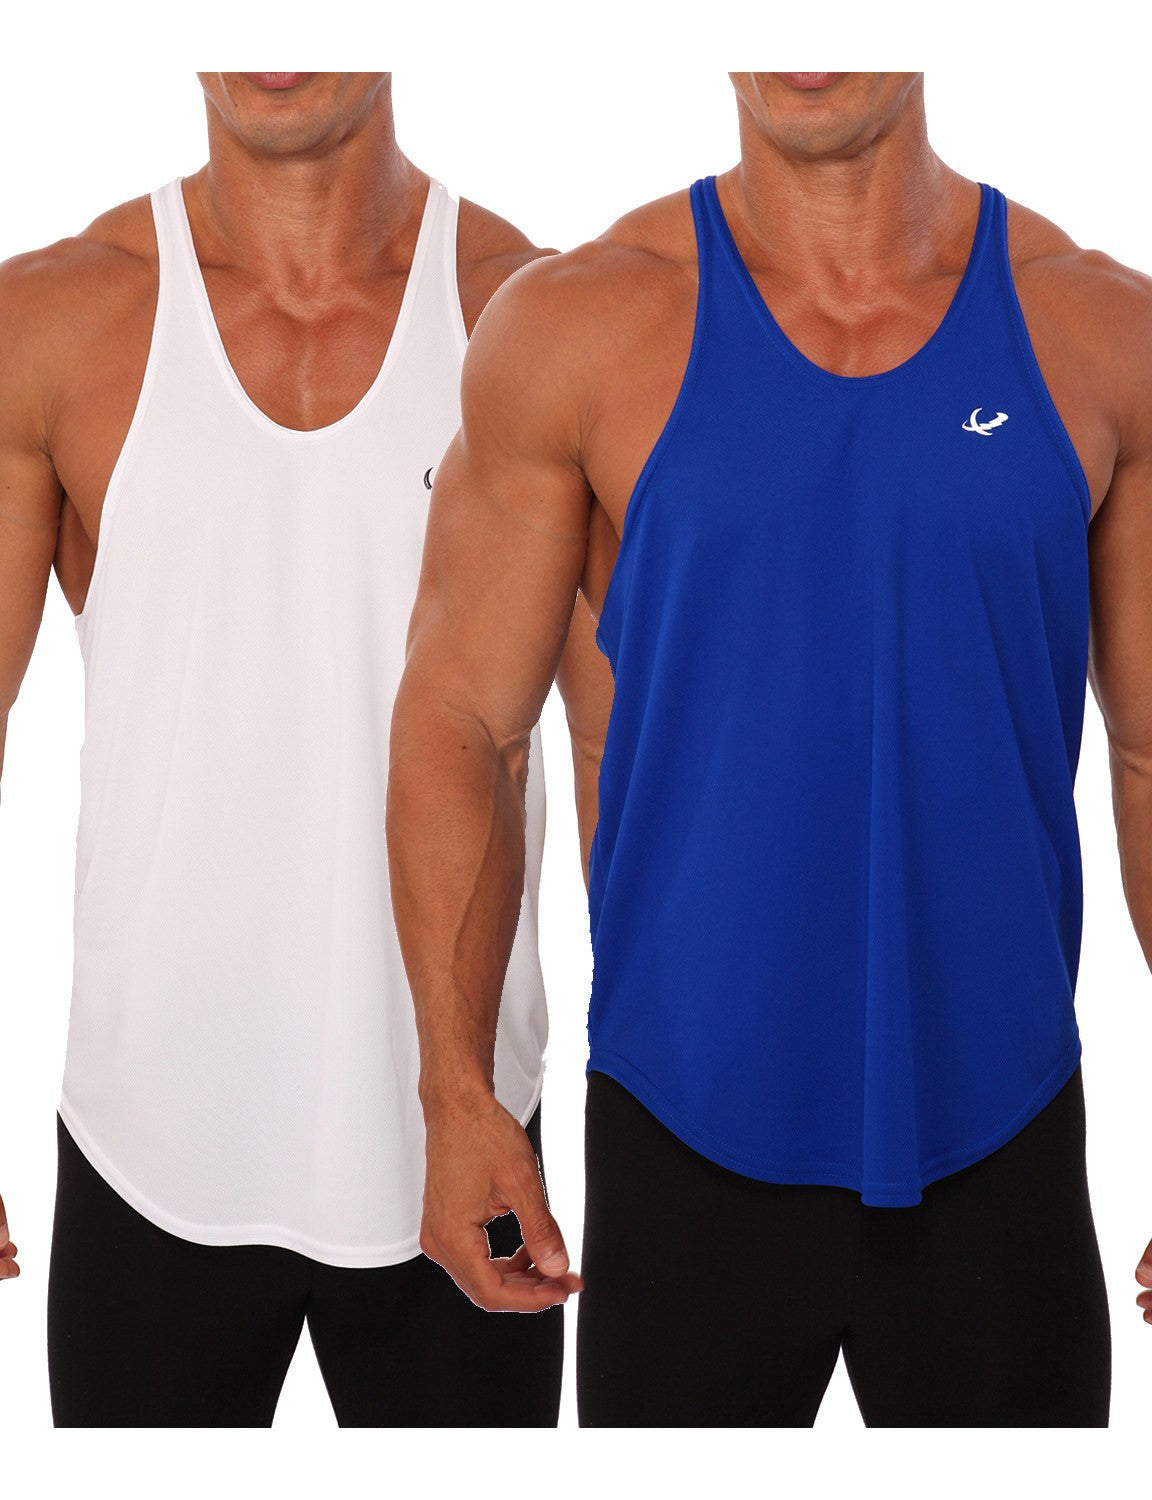 2 Pack DRI-FIT Stringer Tank Top